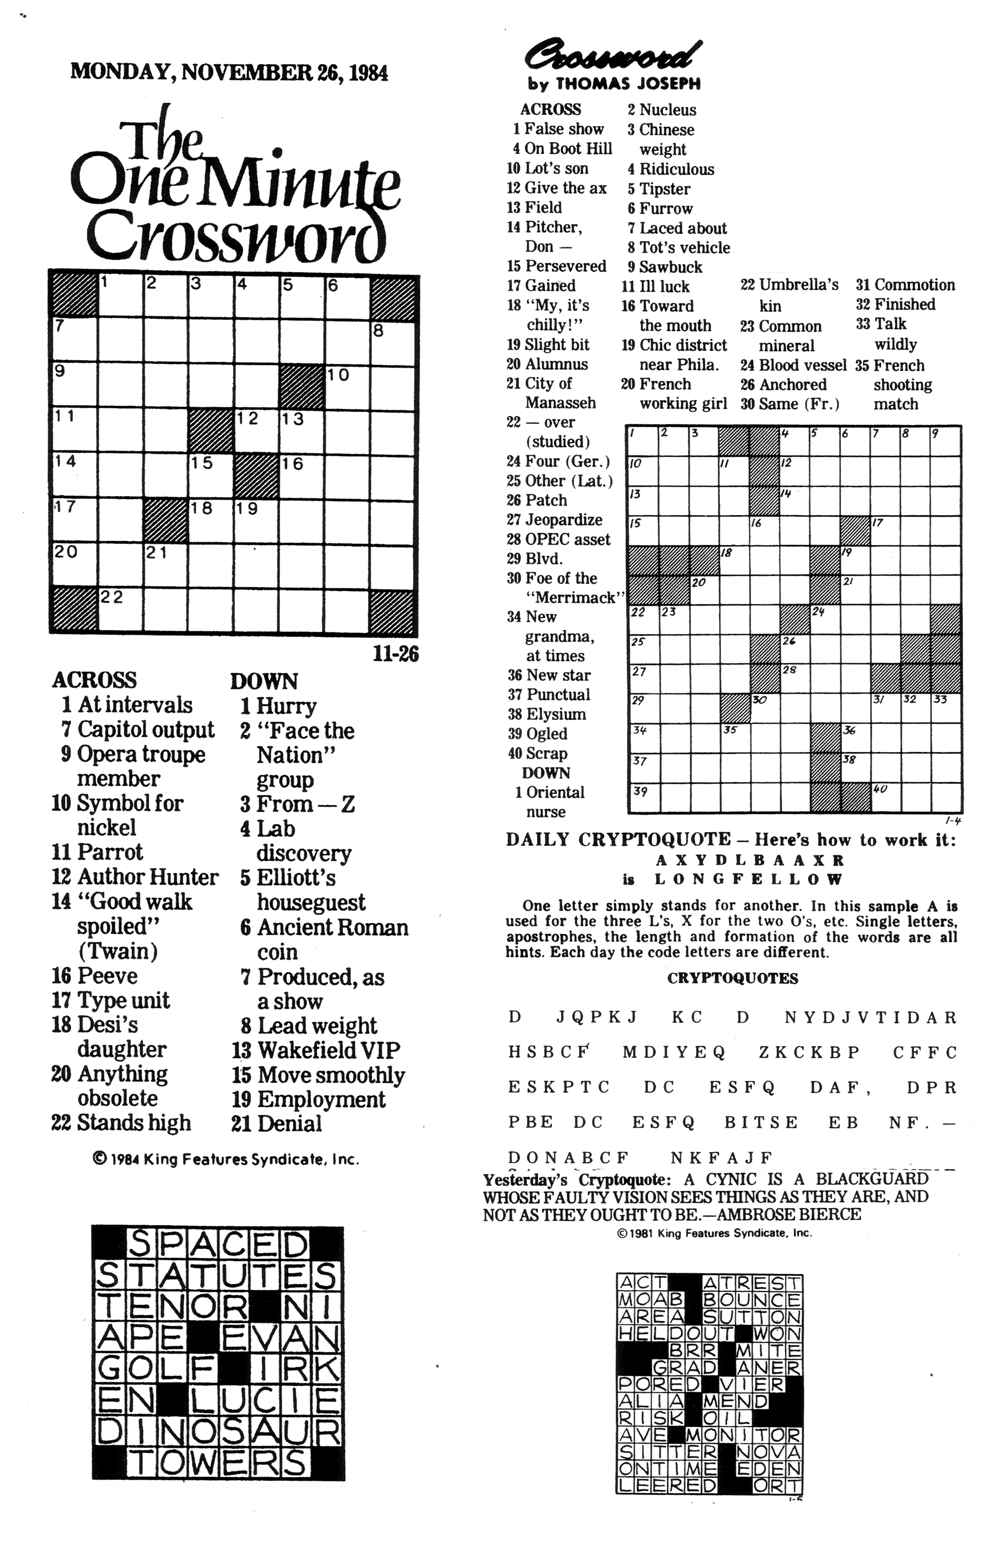 photo relating to Thomas Joseph Printable Crosswords titled Comics Kingdom - Request the Archivist: CROSSWORD PUZZLES - 2015